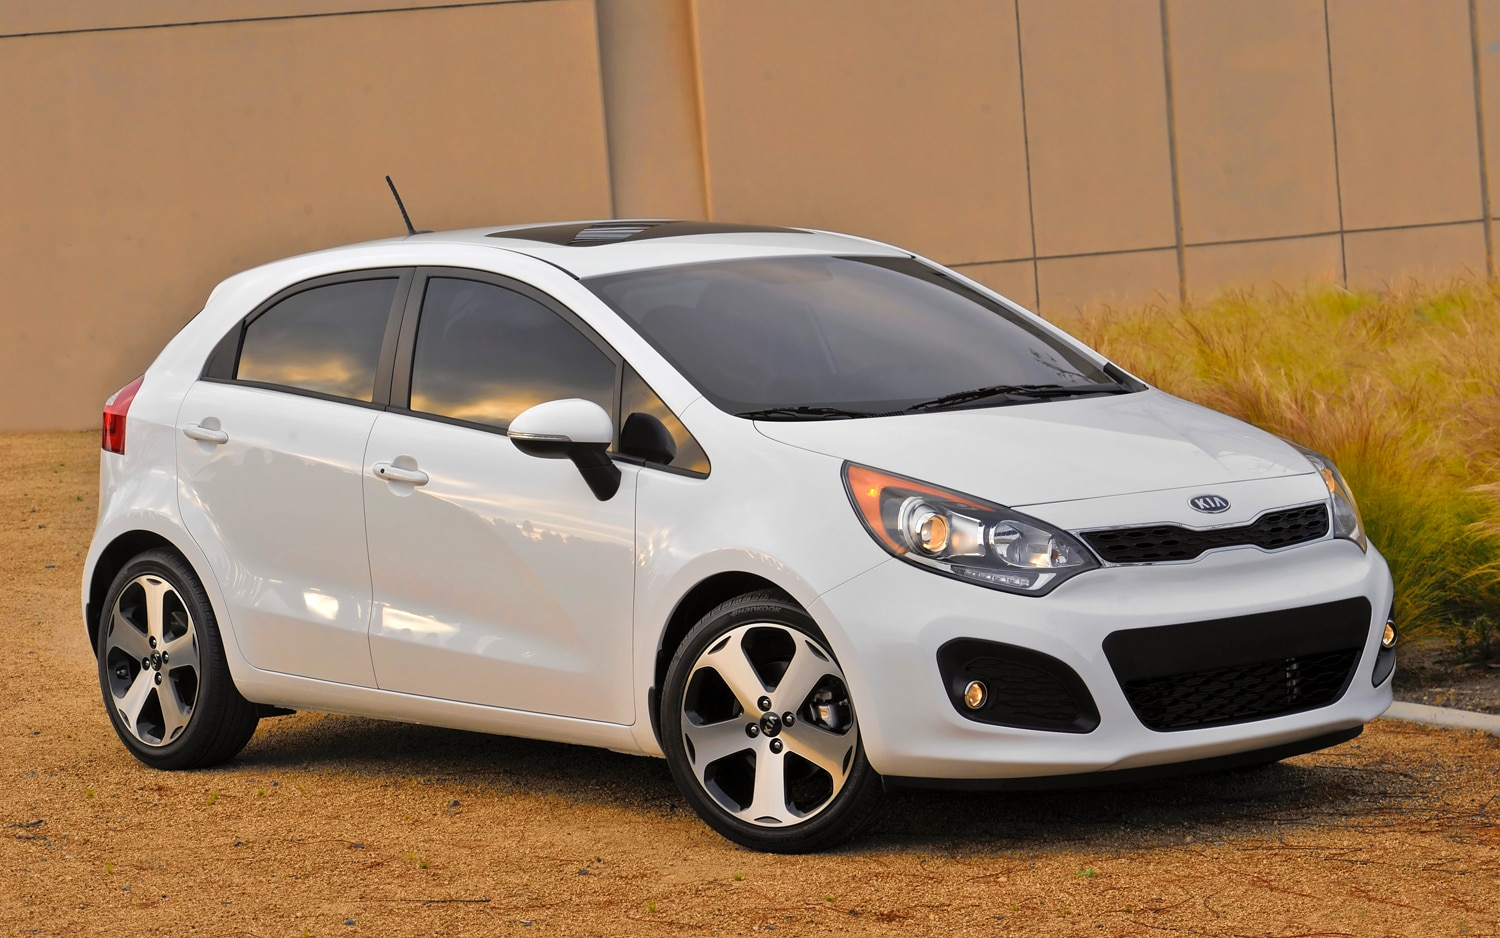 2012 kia rio hatchback priced from 14 350. Black Bedroom Furniture Sets. Home Design Ideas